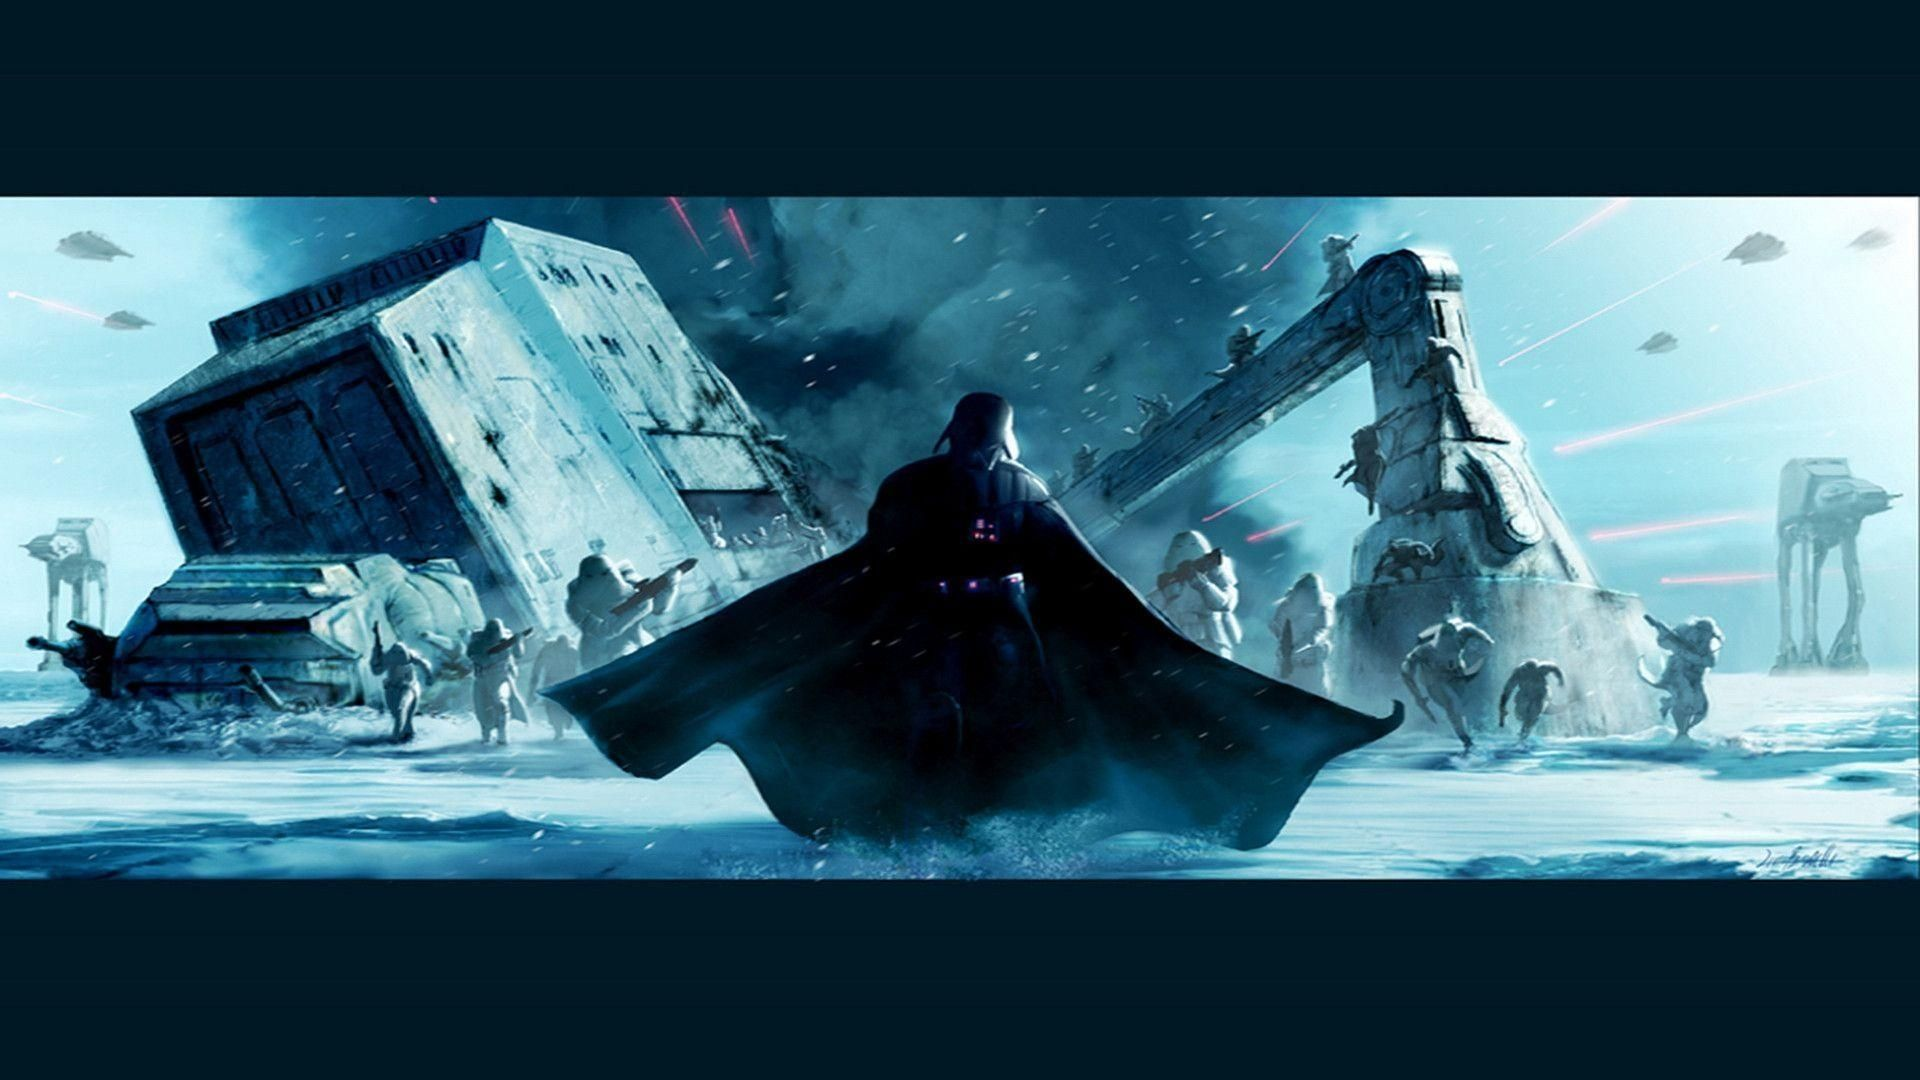 1920x1080 - 1920x1080 HD Wallpapers Star Wars 26